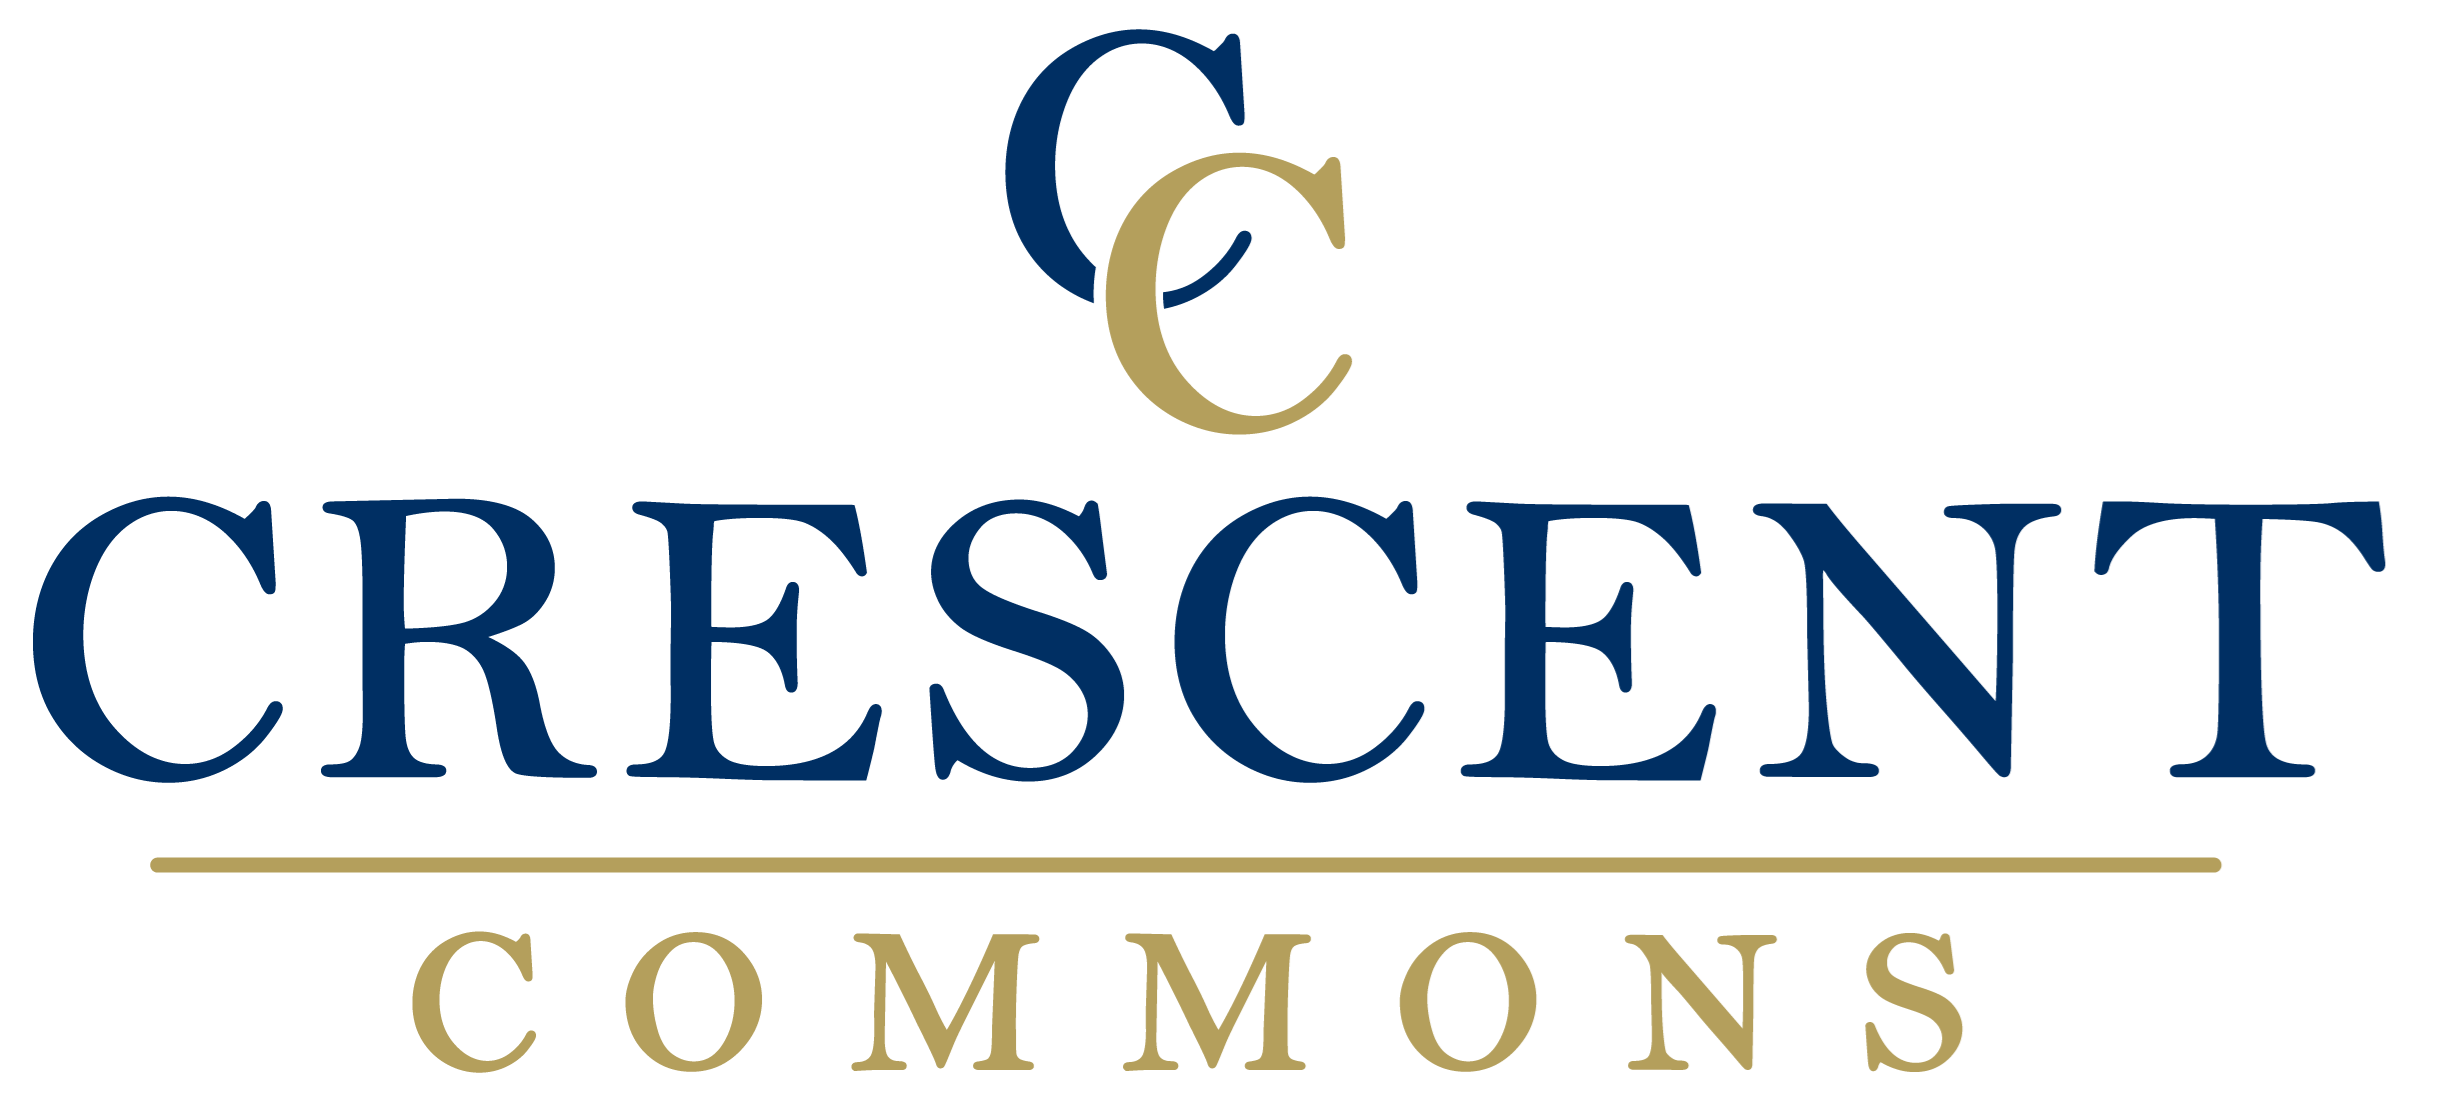 Crescent Commons Property Logo 47